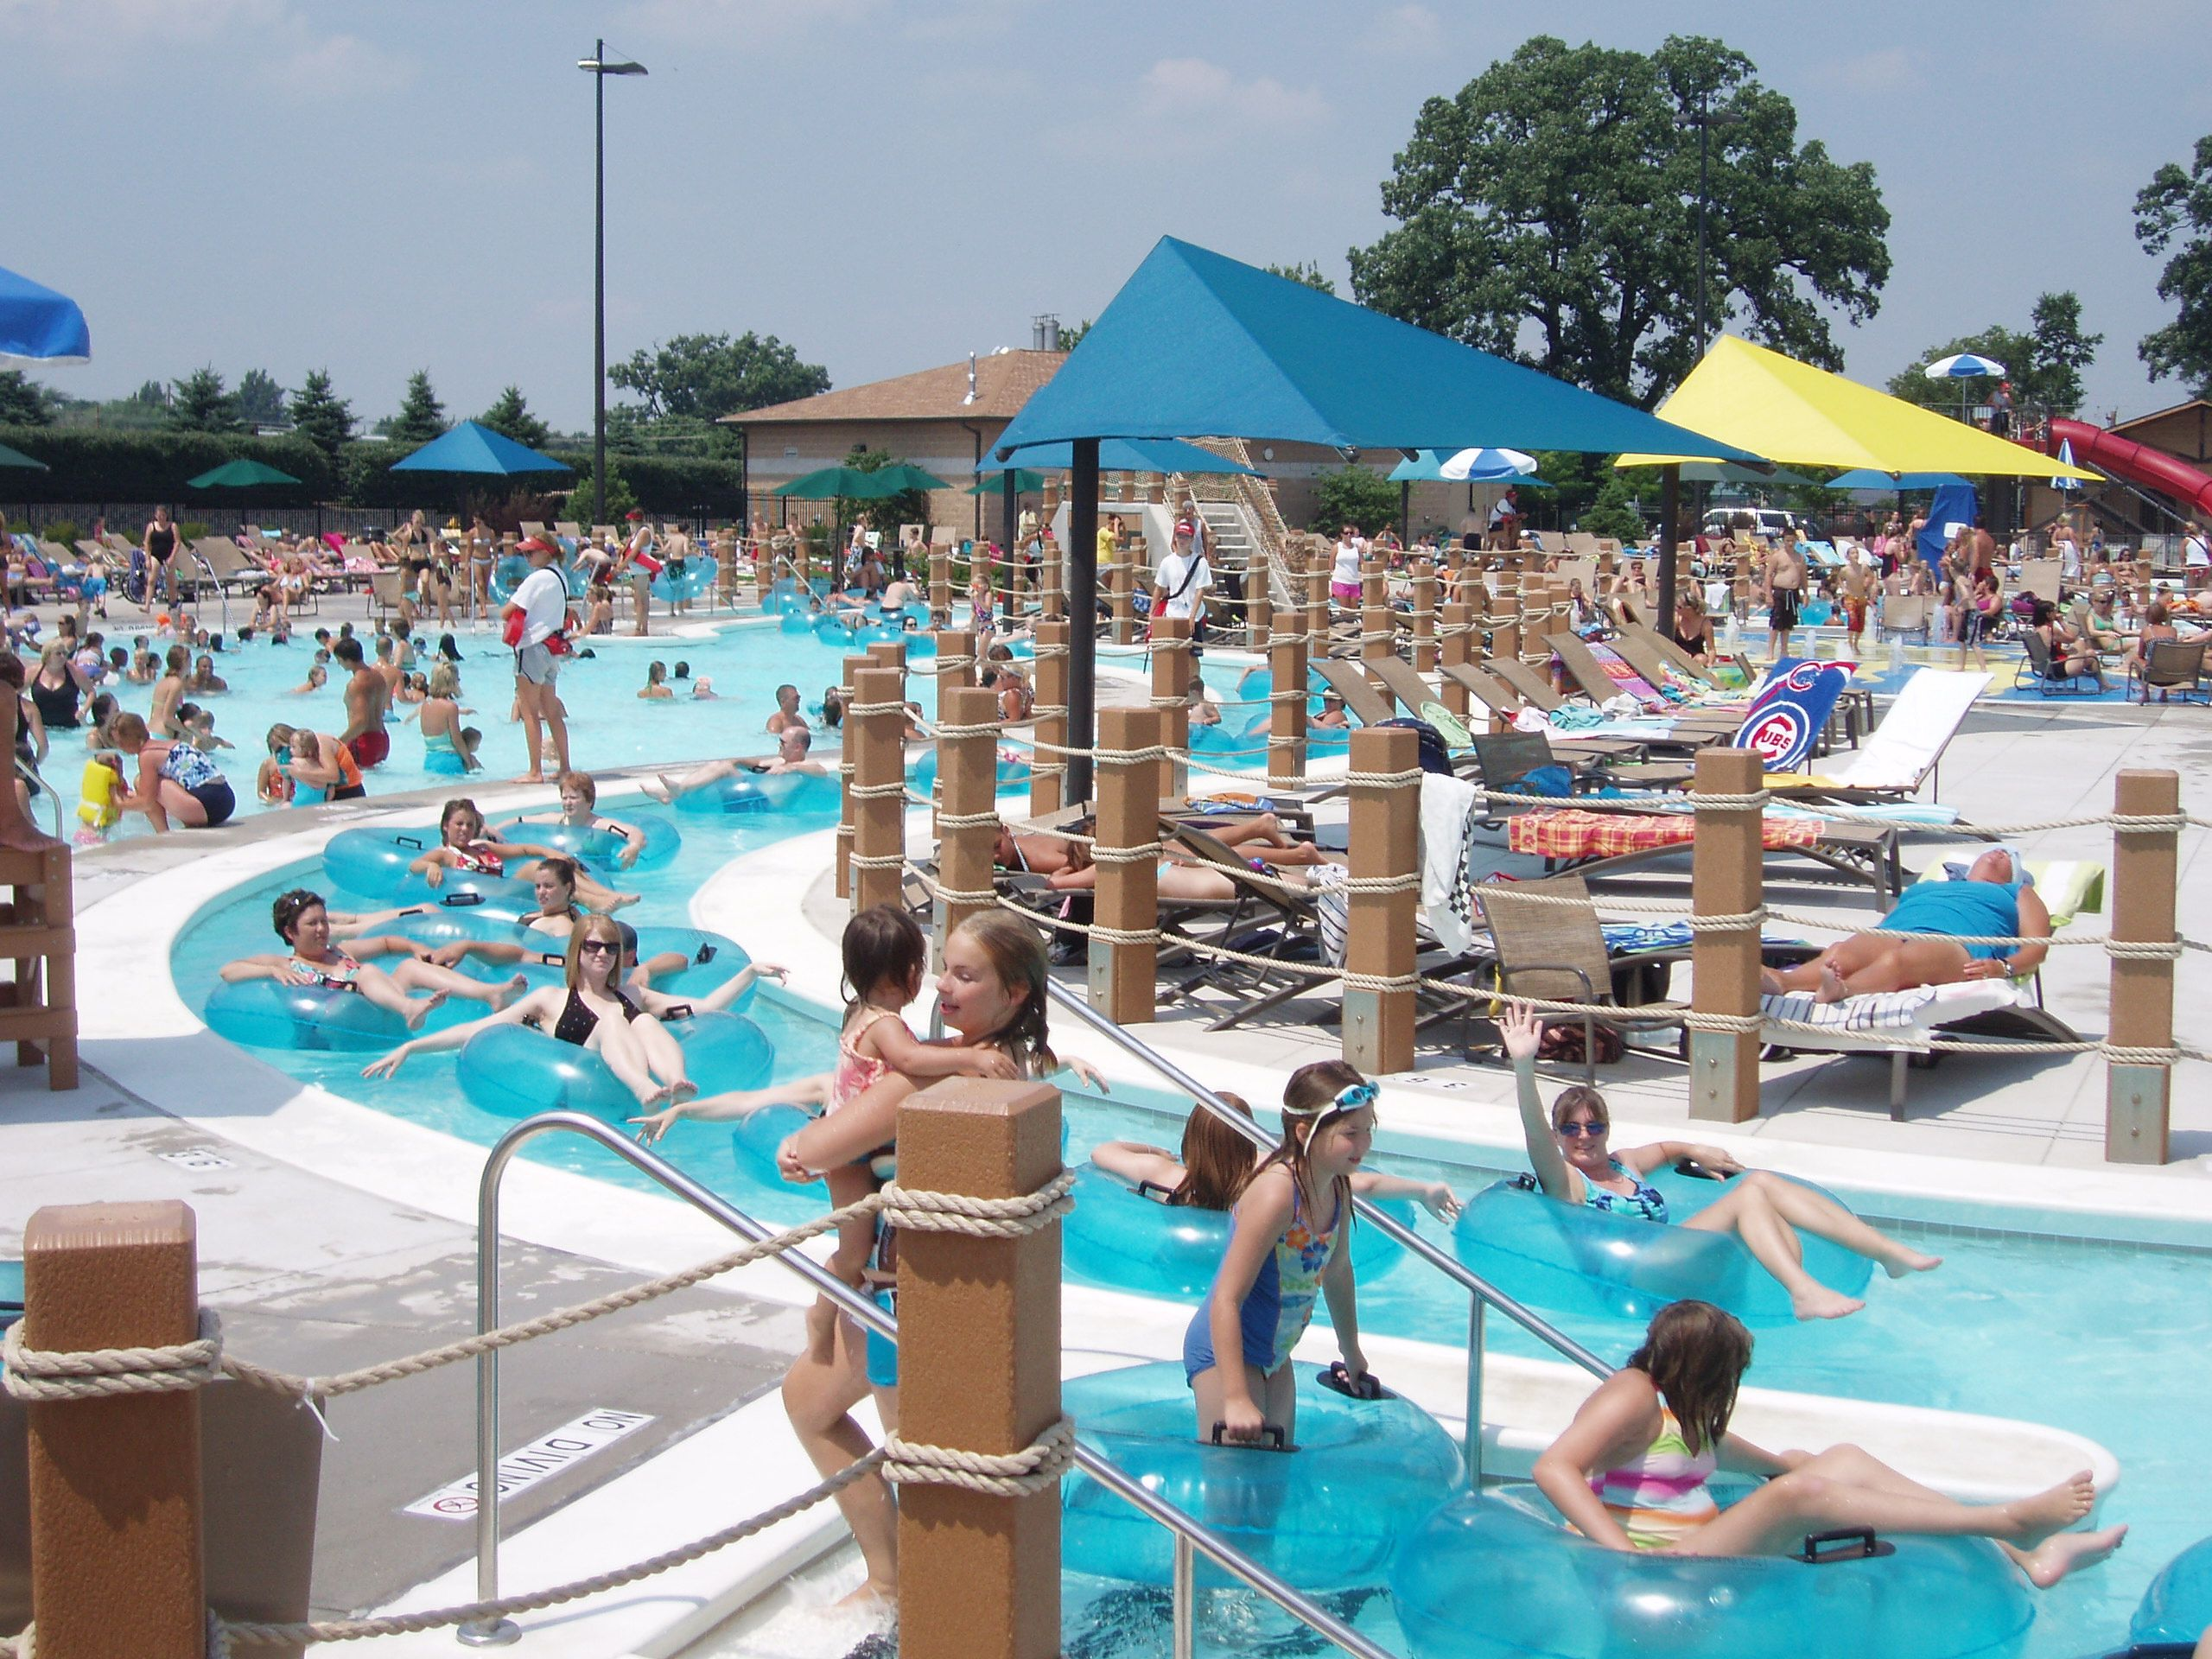 state farm pool guest policy  State Farm Park - the Lazy River | Places my face has seen ...